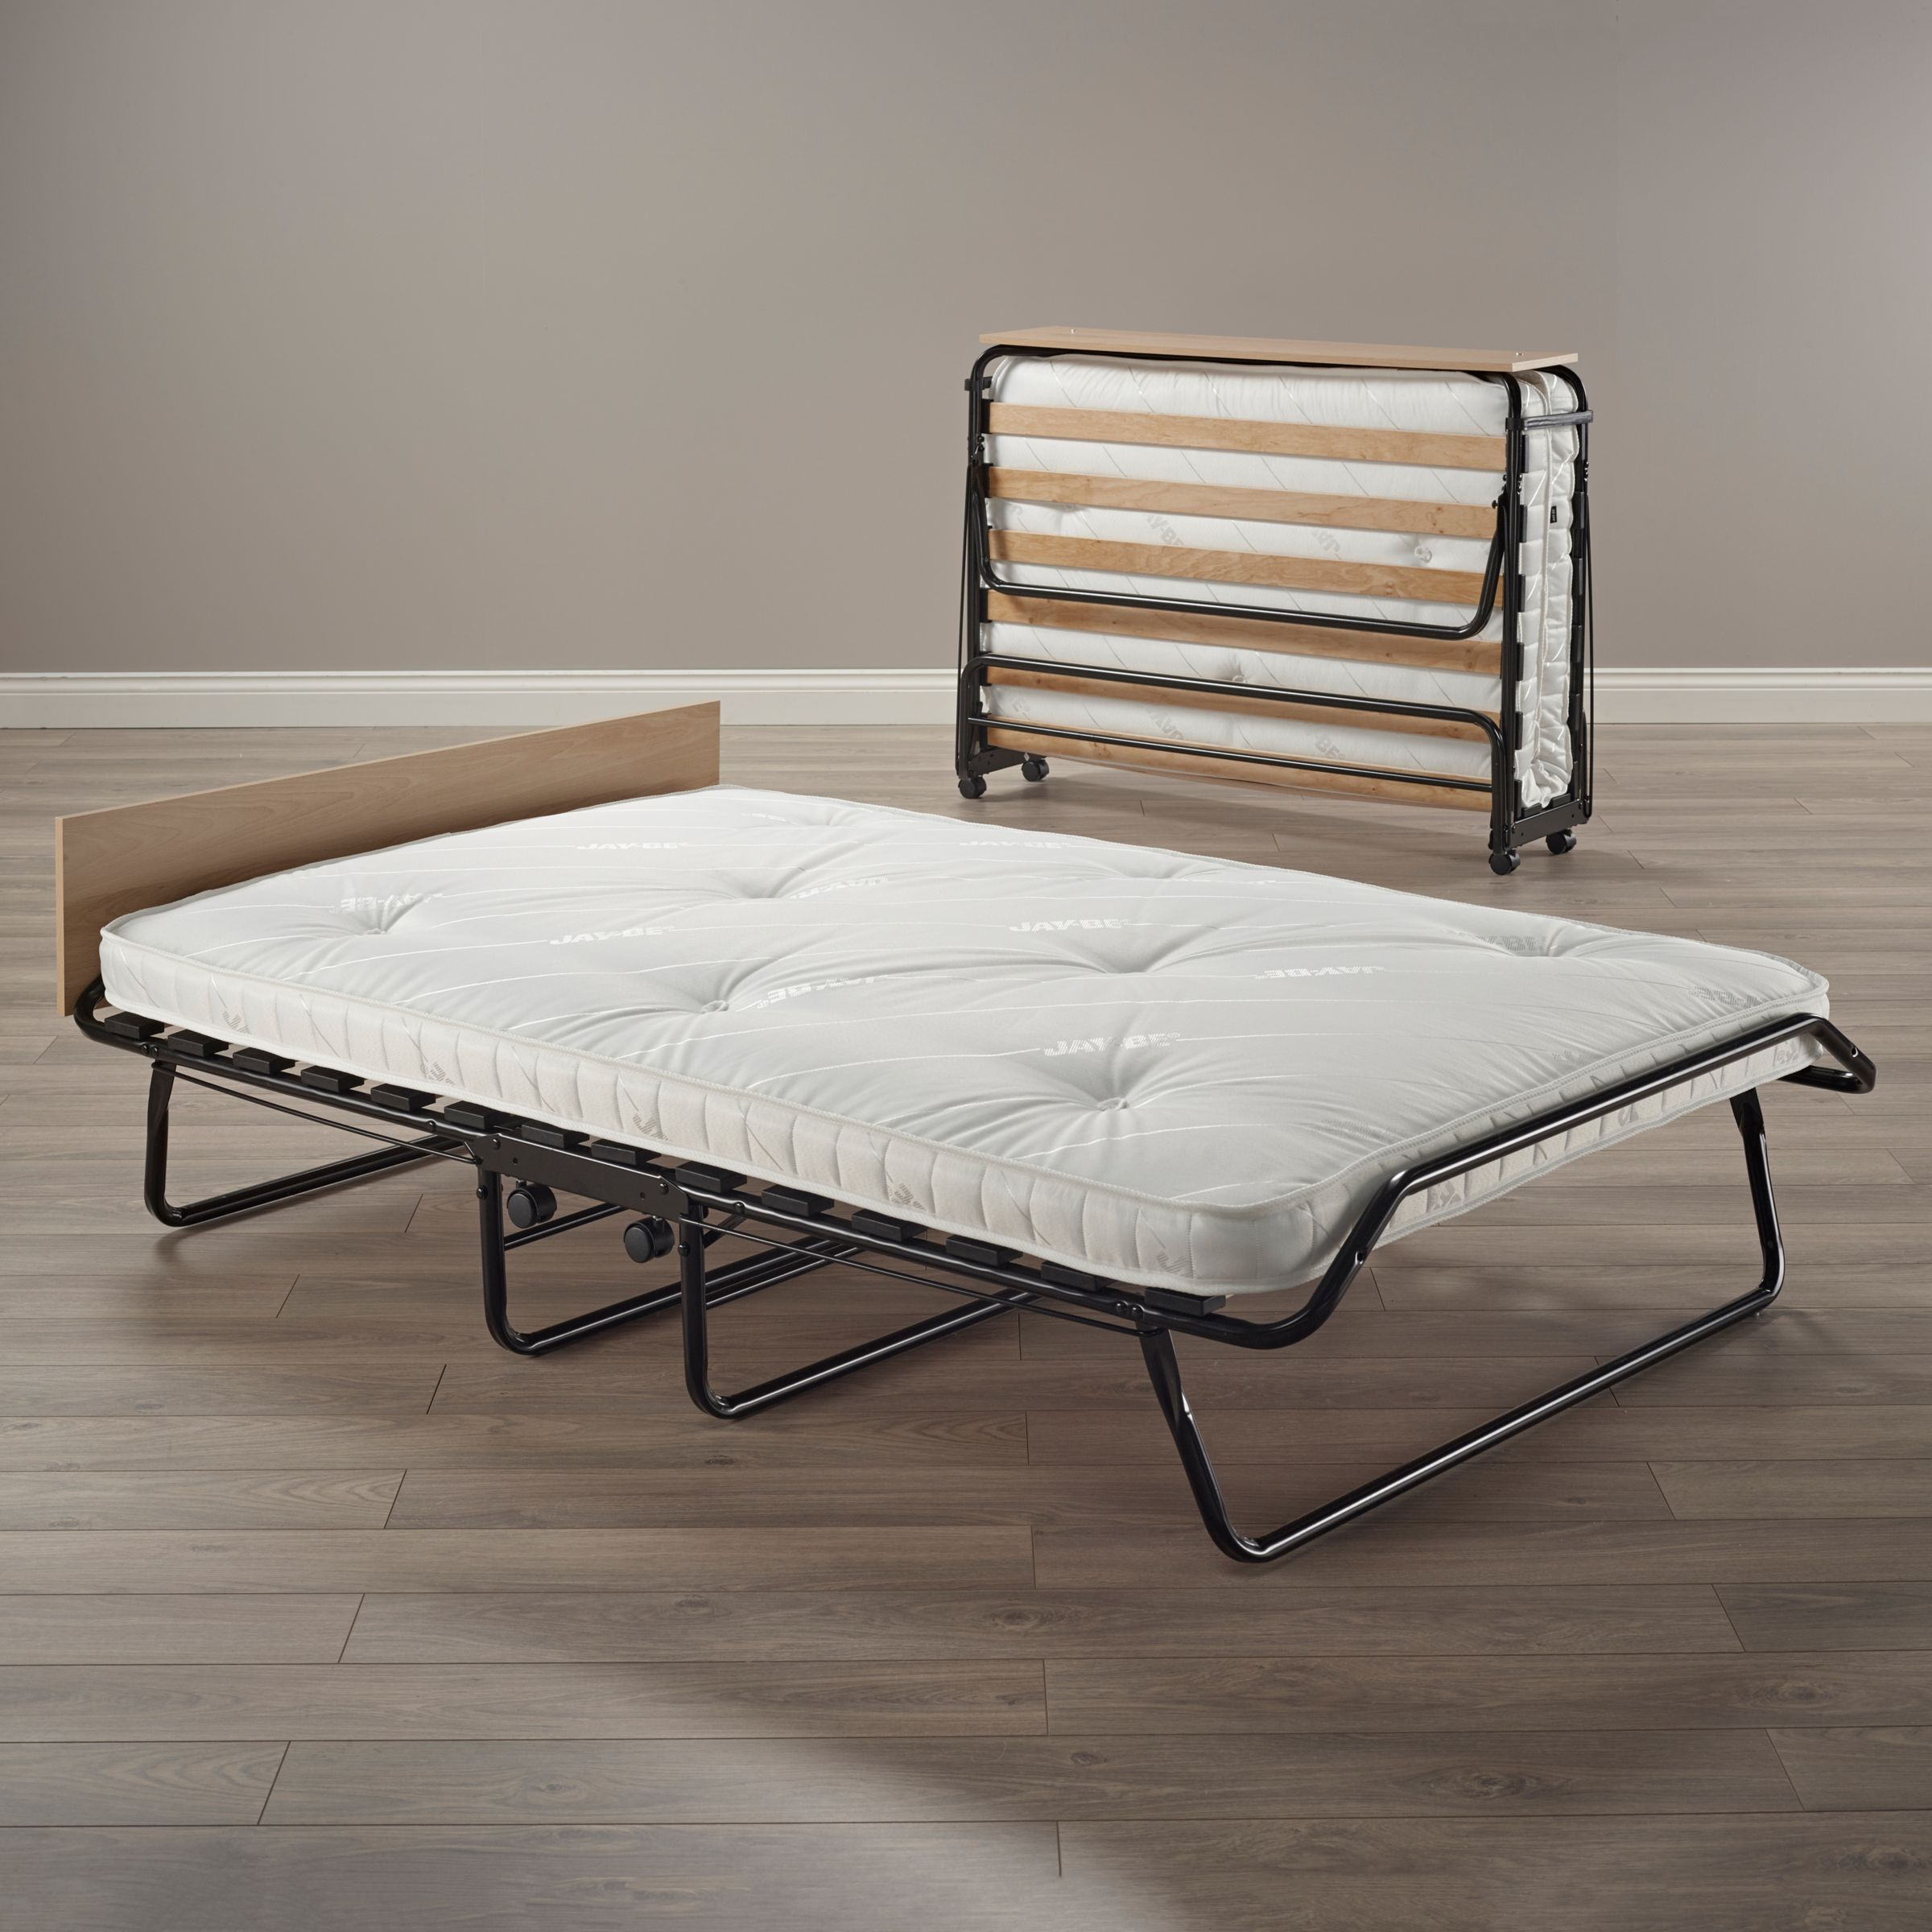 - JAY-BE Mayfair Folding Bed With Pocket Sprung Mattress, Small